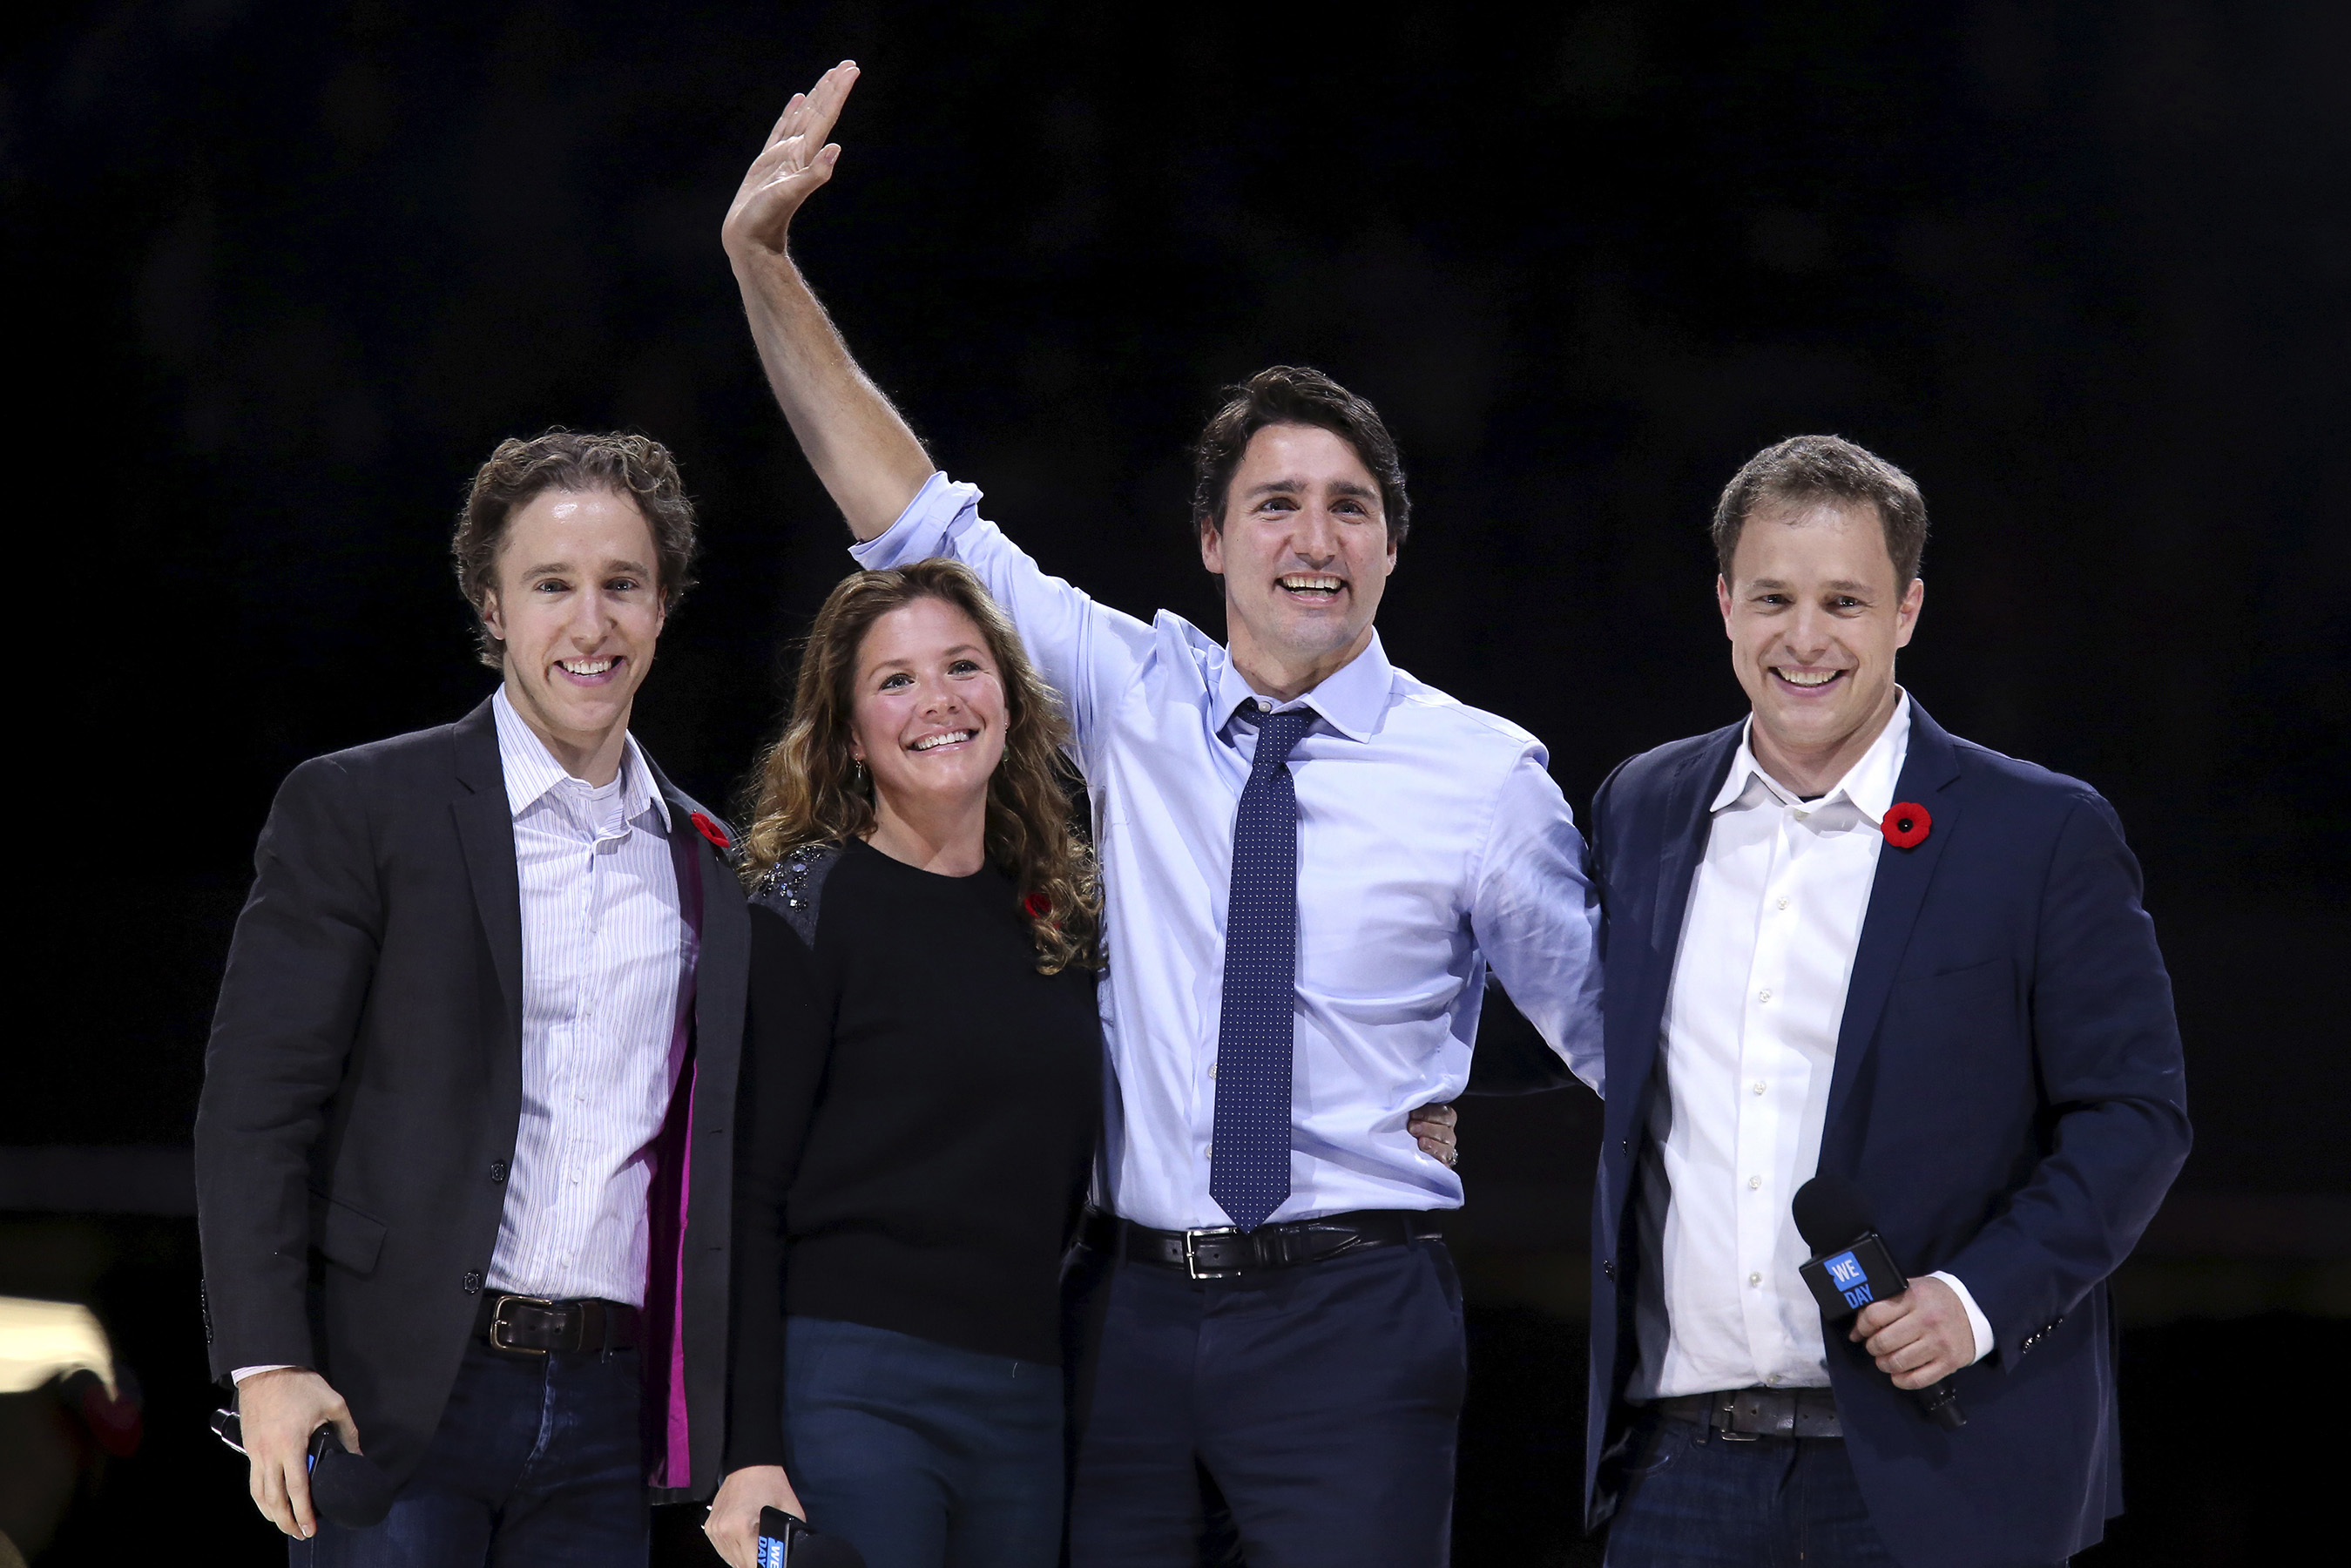 Craig, Grégoire Trudeau, the PM and Marc onstage for a WE Day in Ottawa in 2015 (Chris Wattie/Reuters)